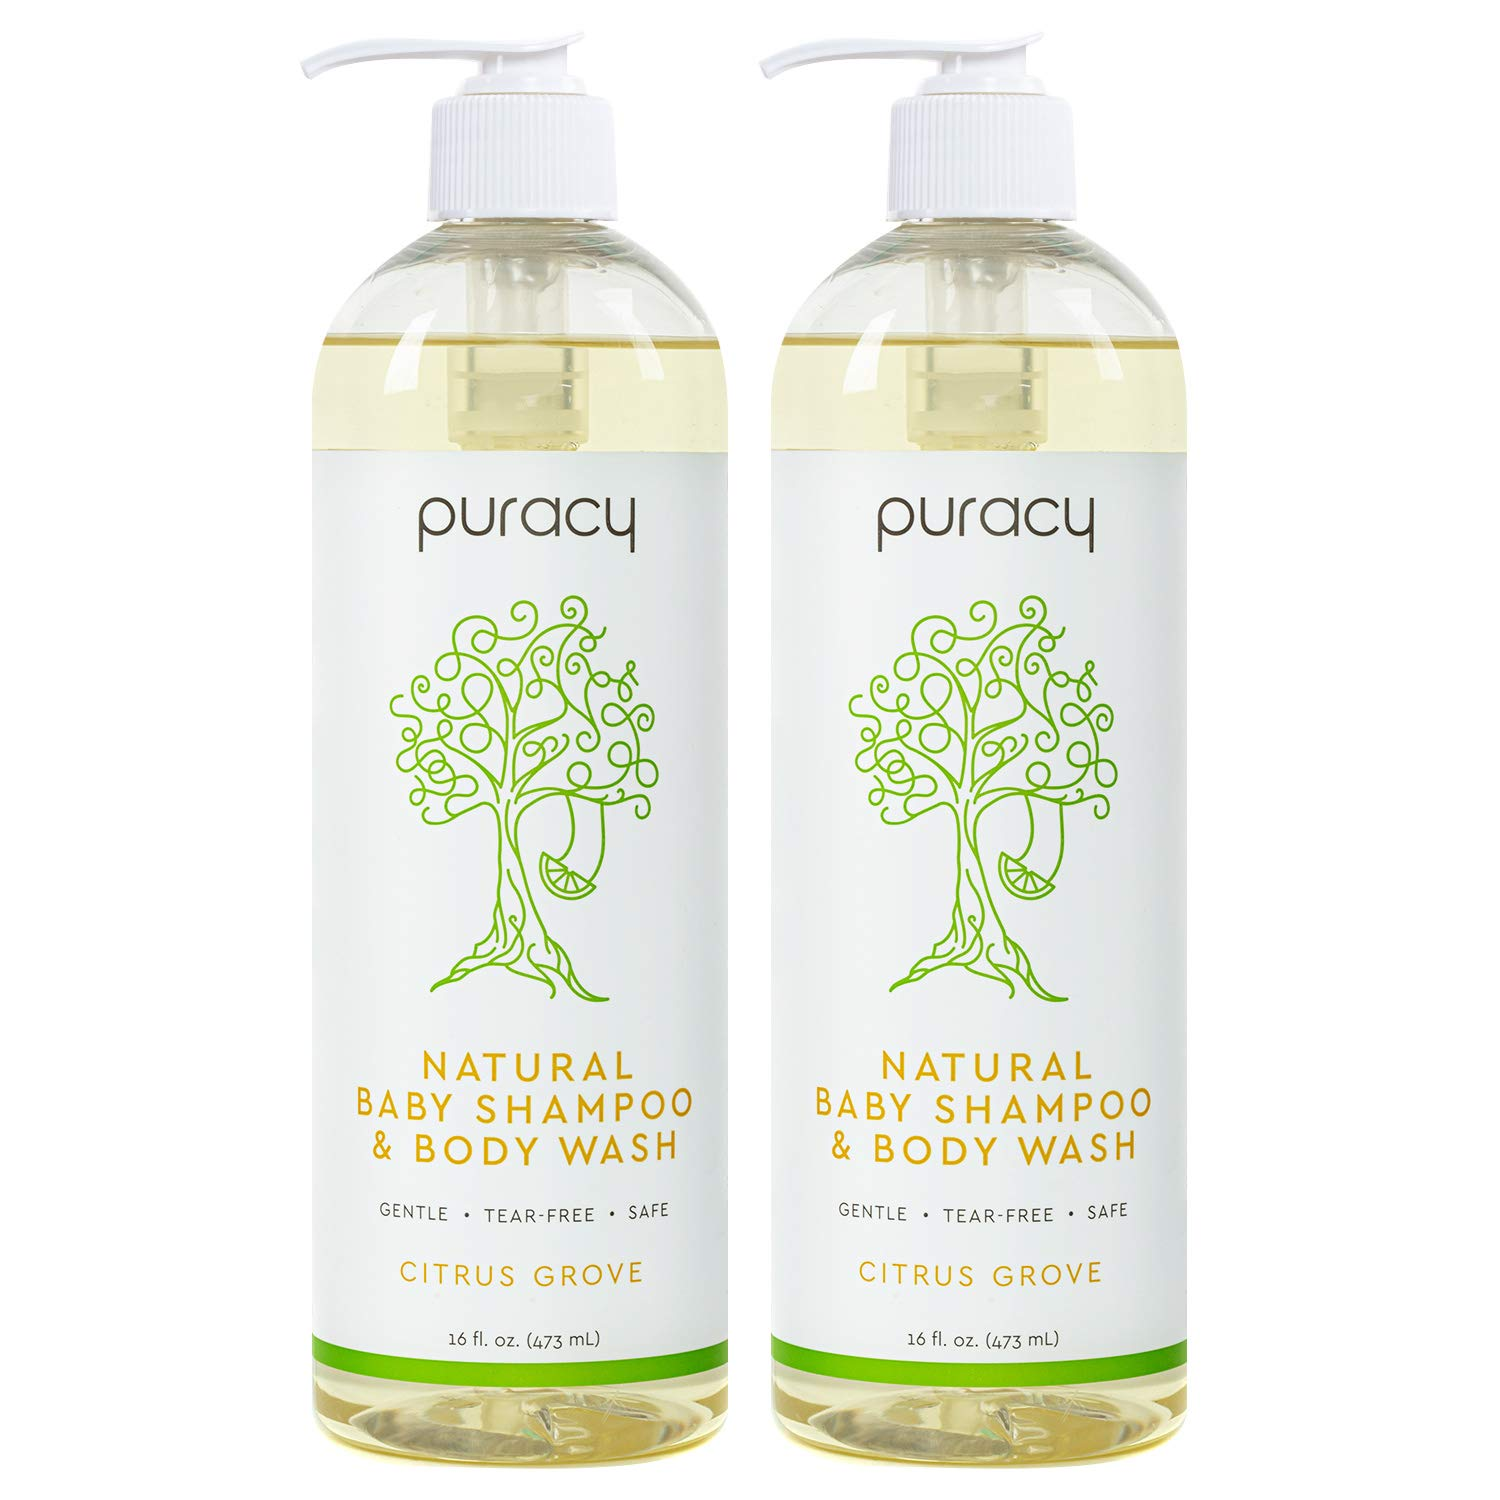 Puracy Baby Shampoo & Natural Body Wash